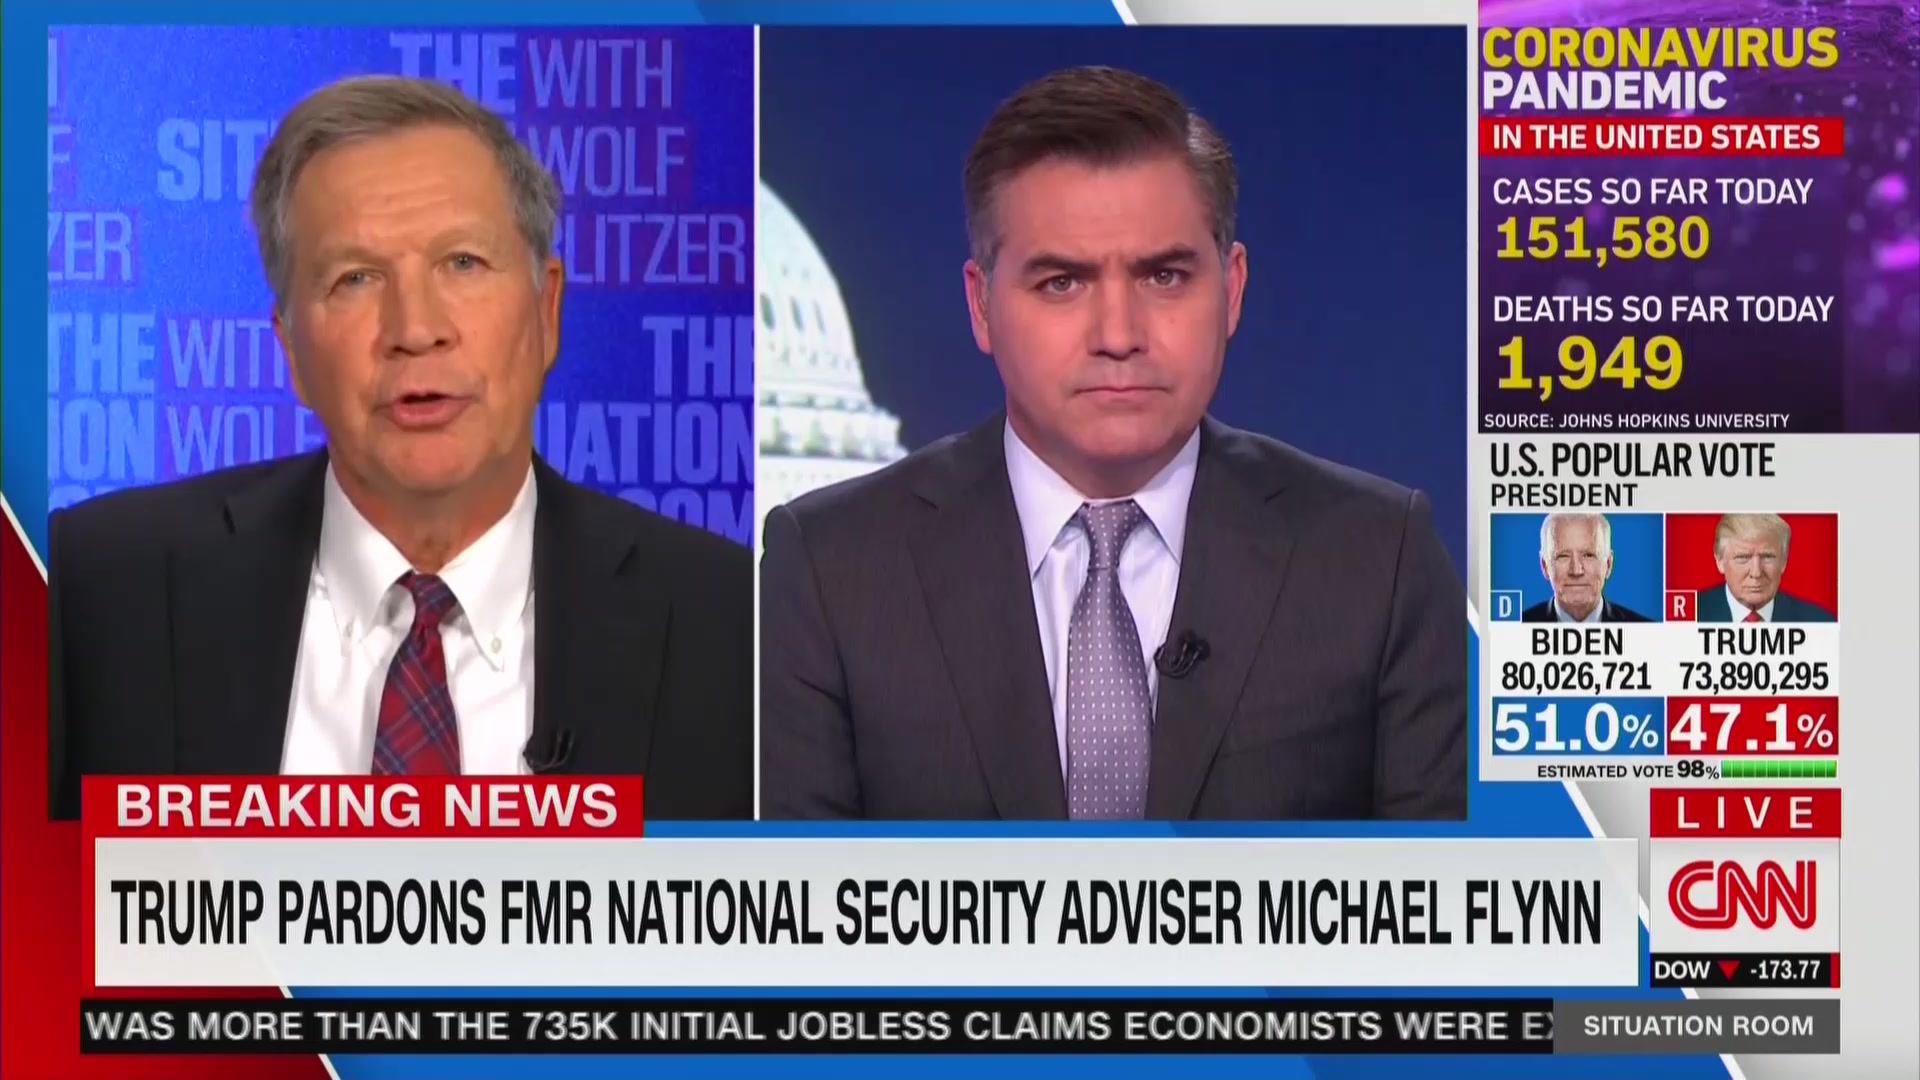 Kasich shrugs off CNN uproar about Michael Flynn pardon during clash with Jim Acosta: 'Let's move on' – Fox News